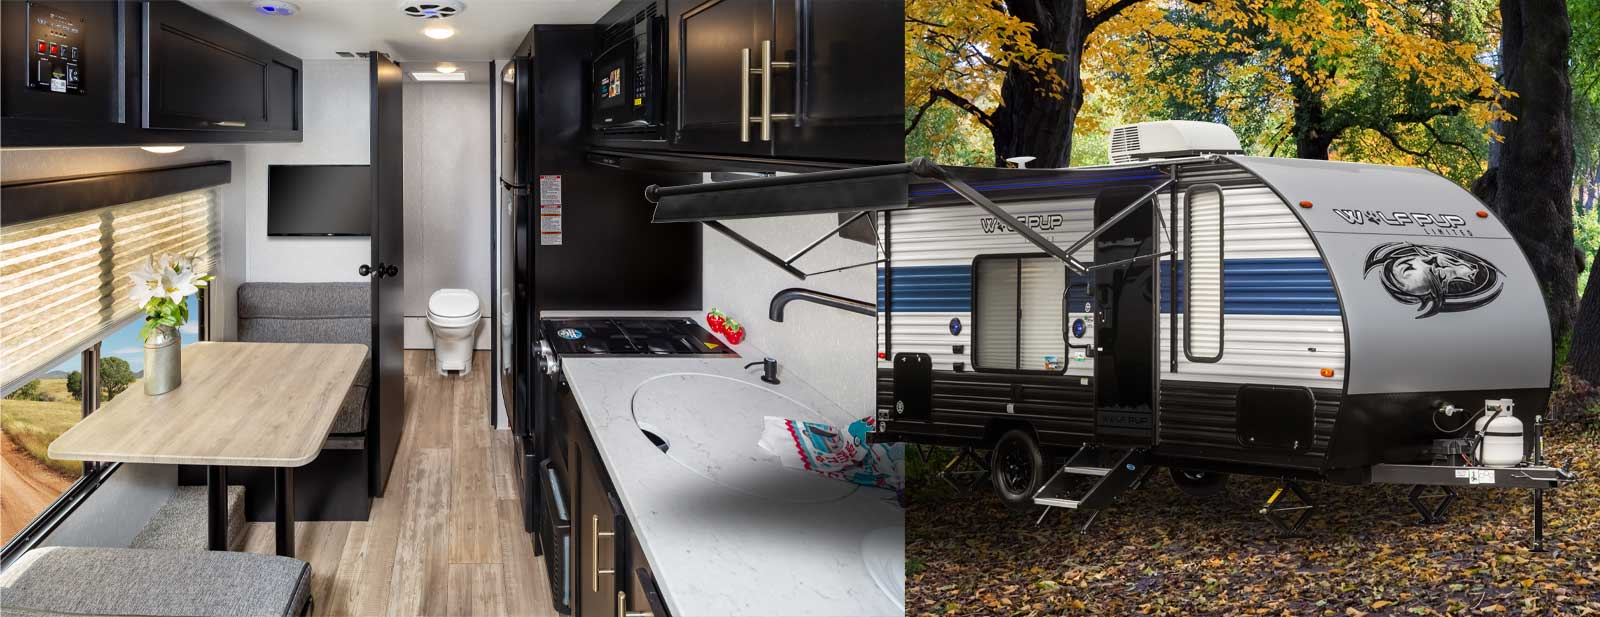 Swell Wolf Pup Forest River Rv Manufacturer Of Travel Trailers Download Free Architecture Designs Scobabritishbridgeorg